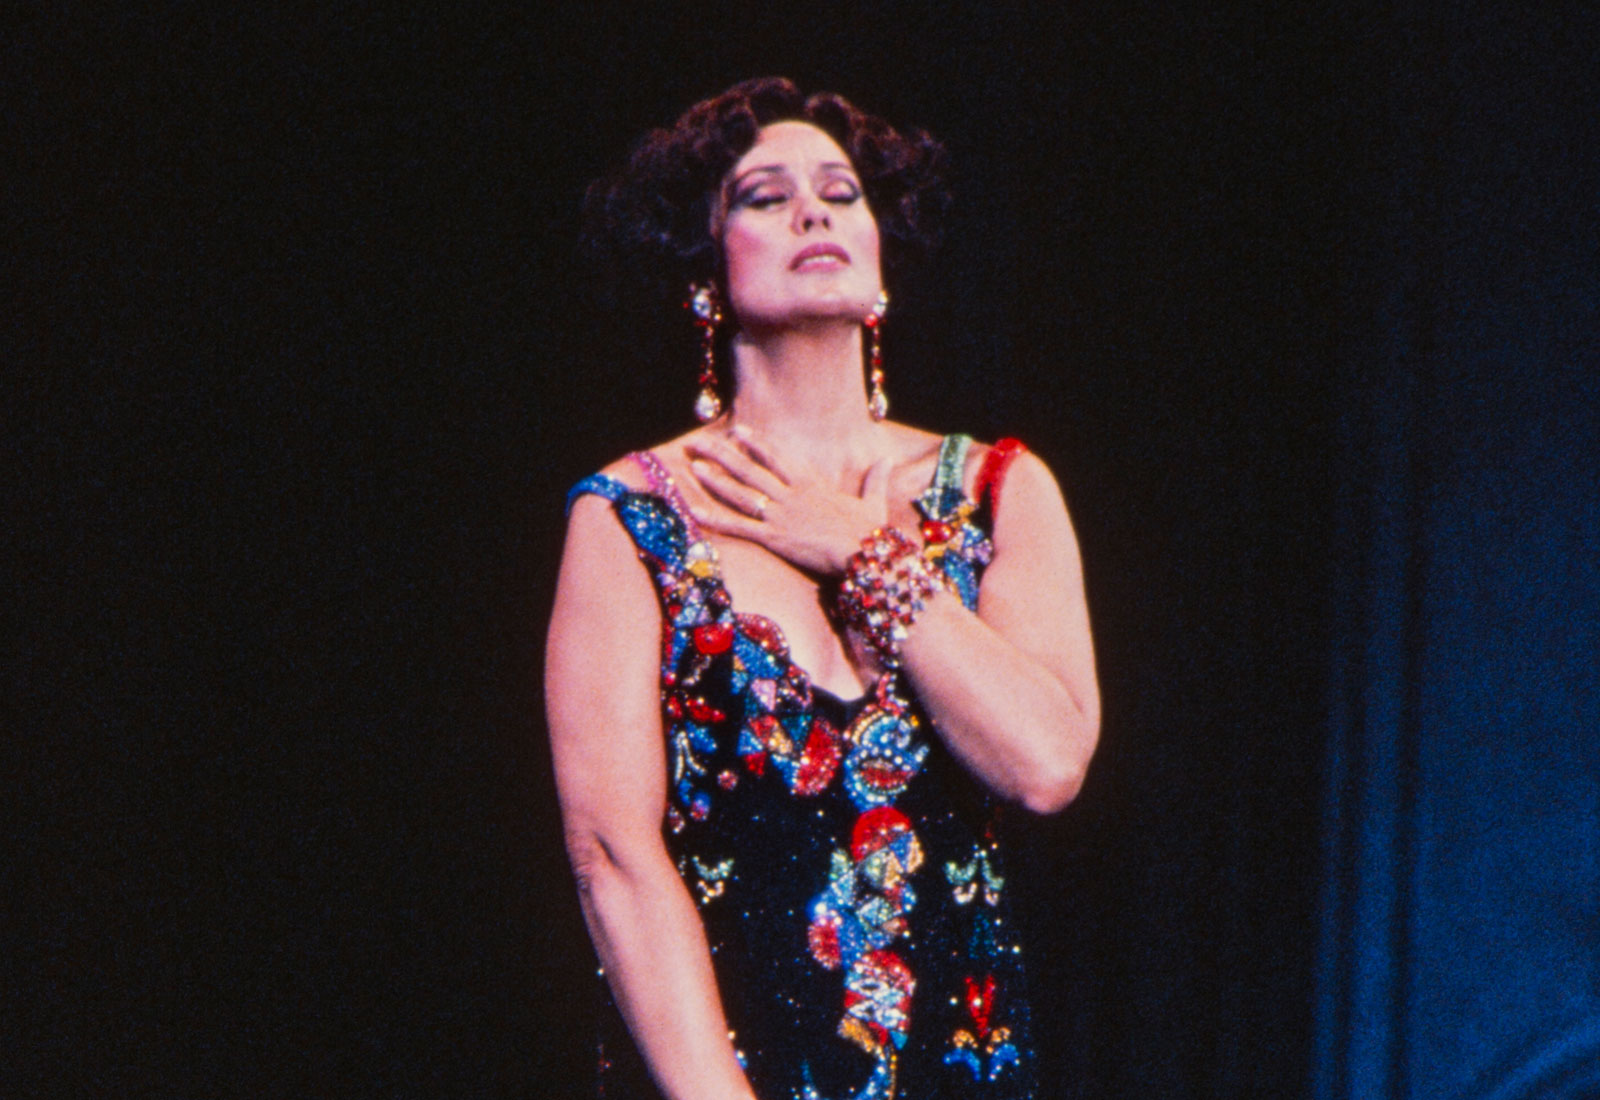 capriccio by richard strauss countess madeleine played by kiri te kanawa costume by gianni versace 1990 1600 x 1100